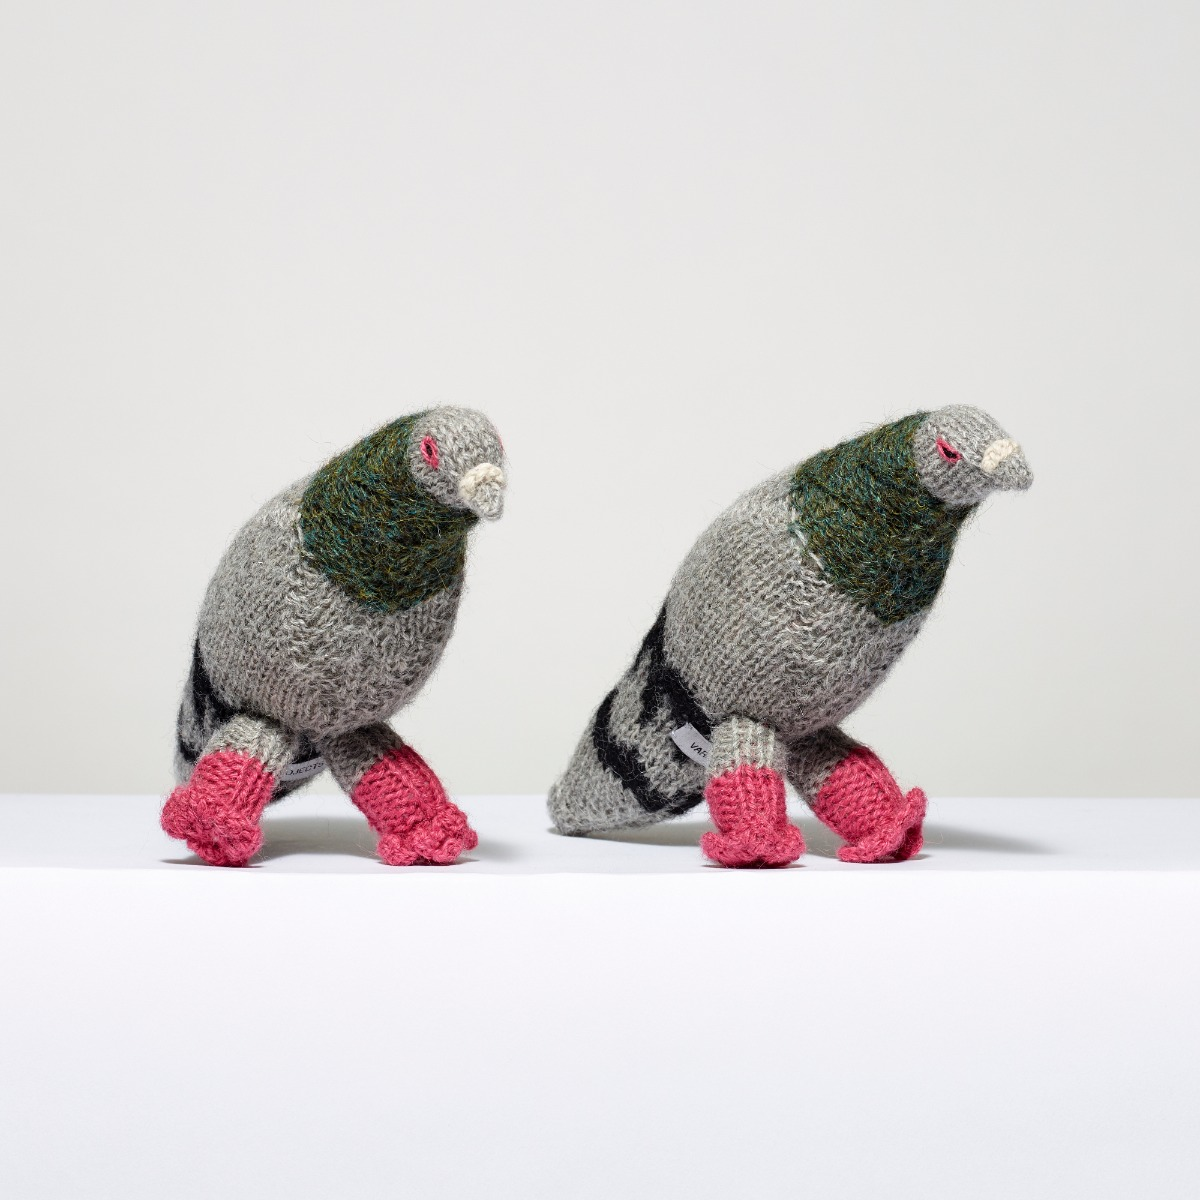 Two pigeons made out of yarn